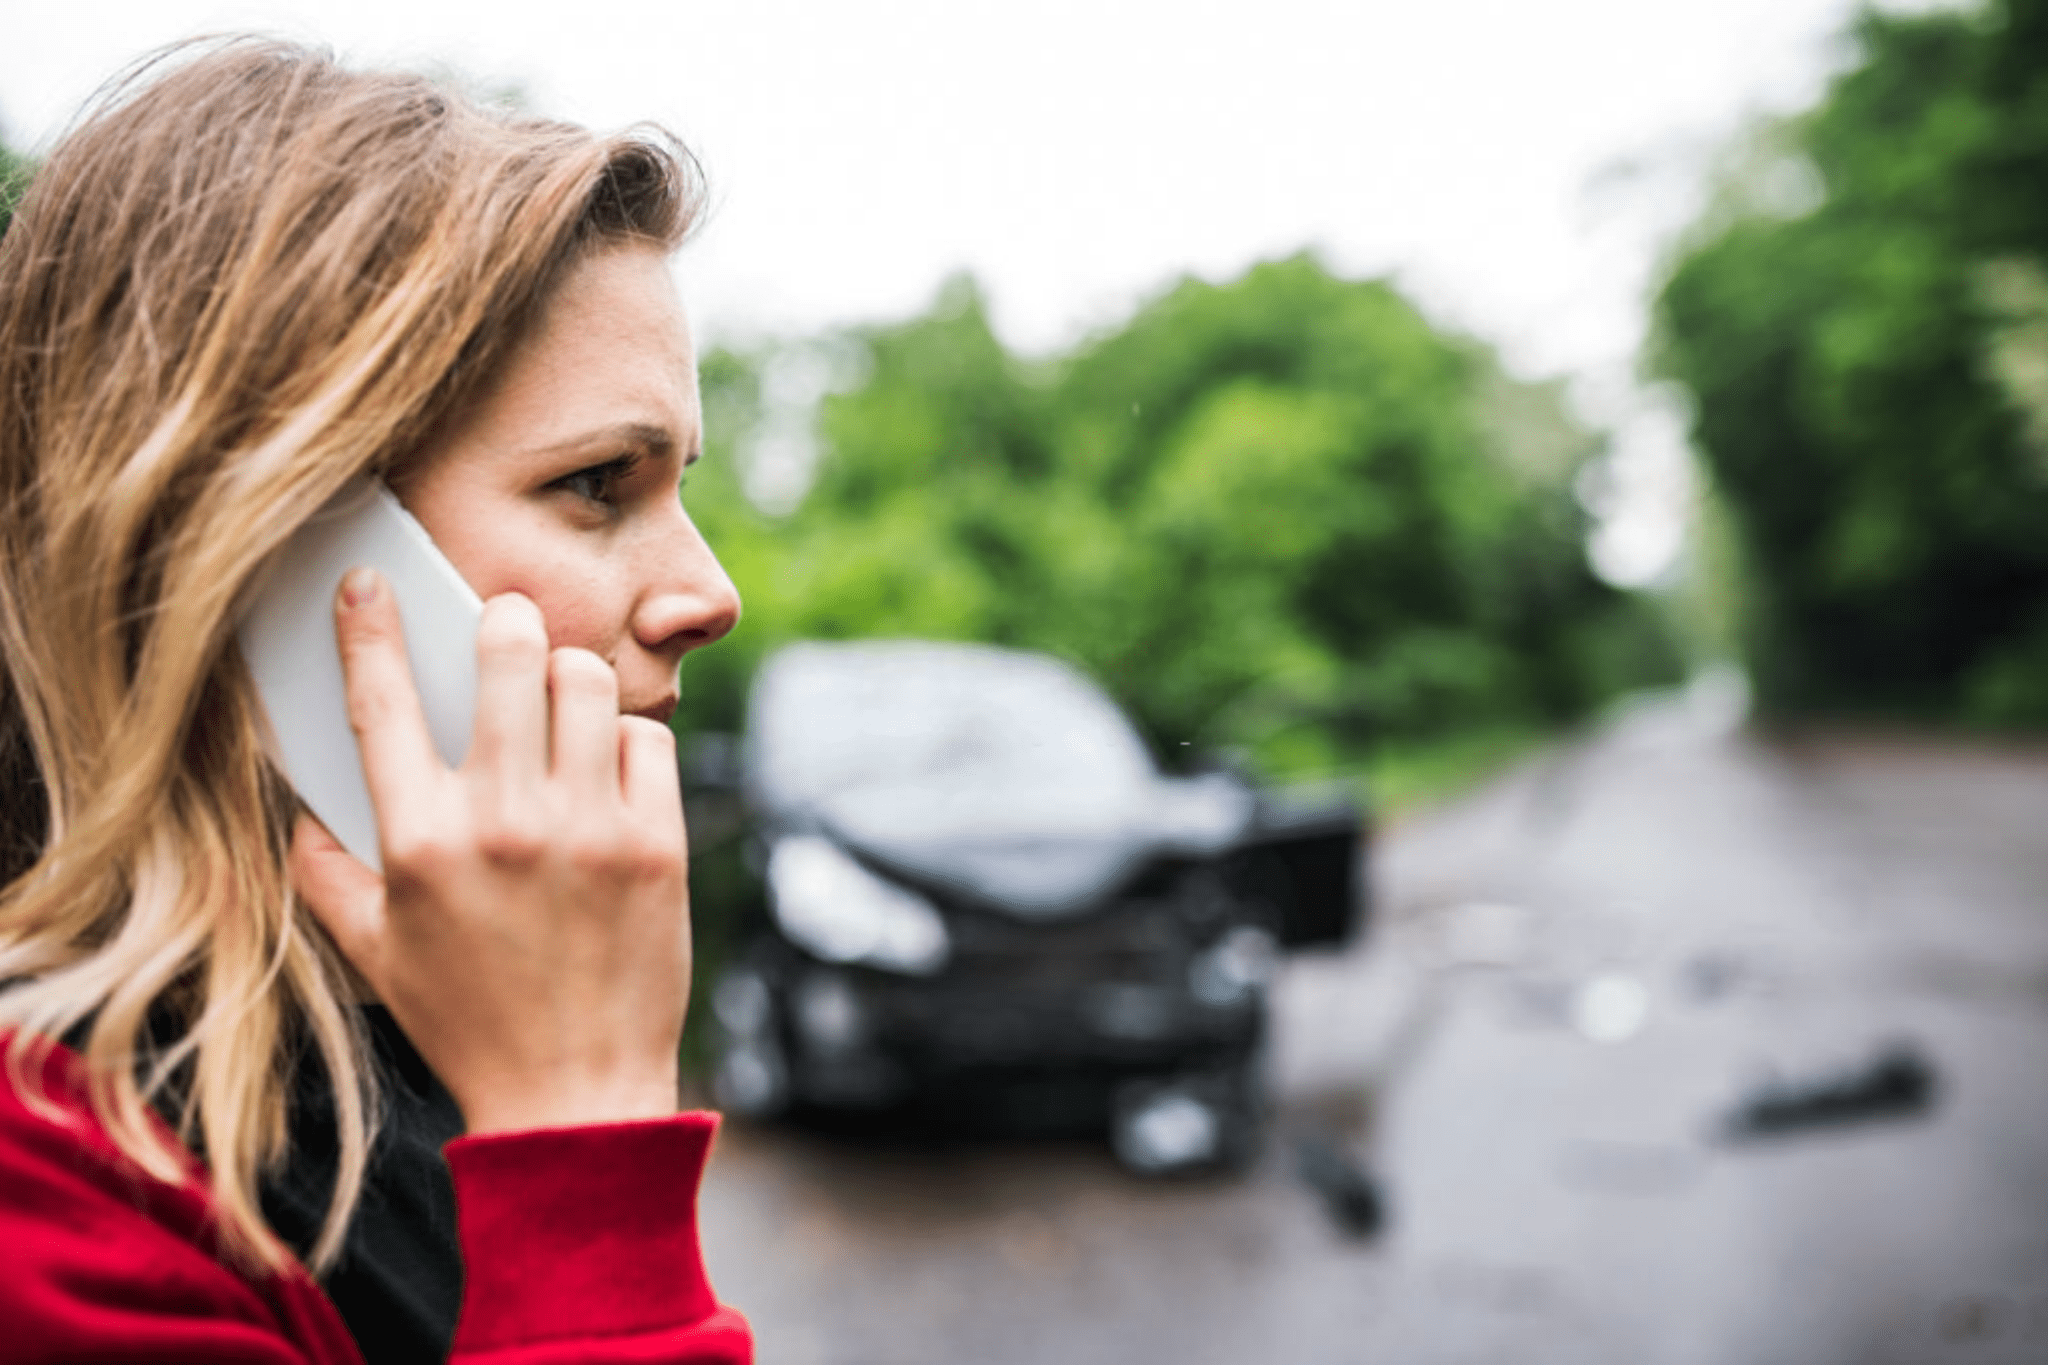 Rodriguez Law Firm Blog | What to do After a Car Accident?